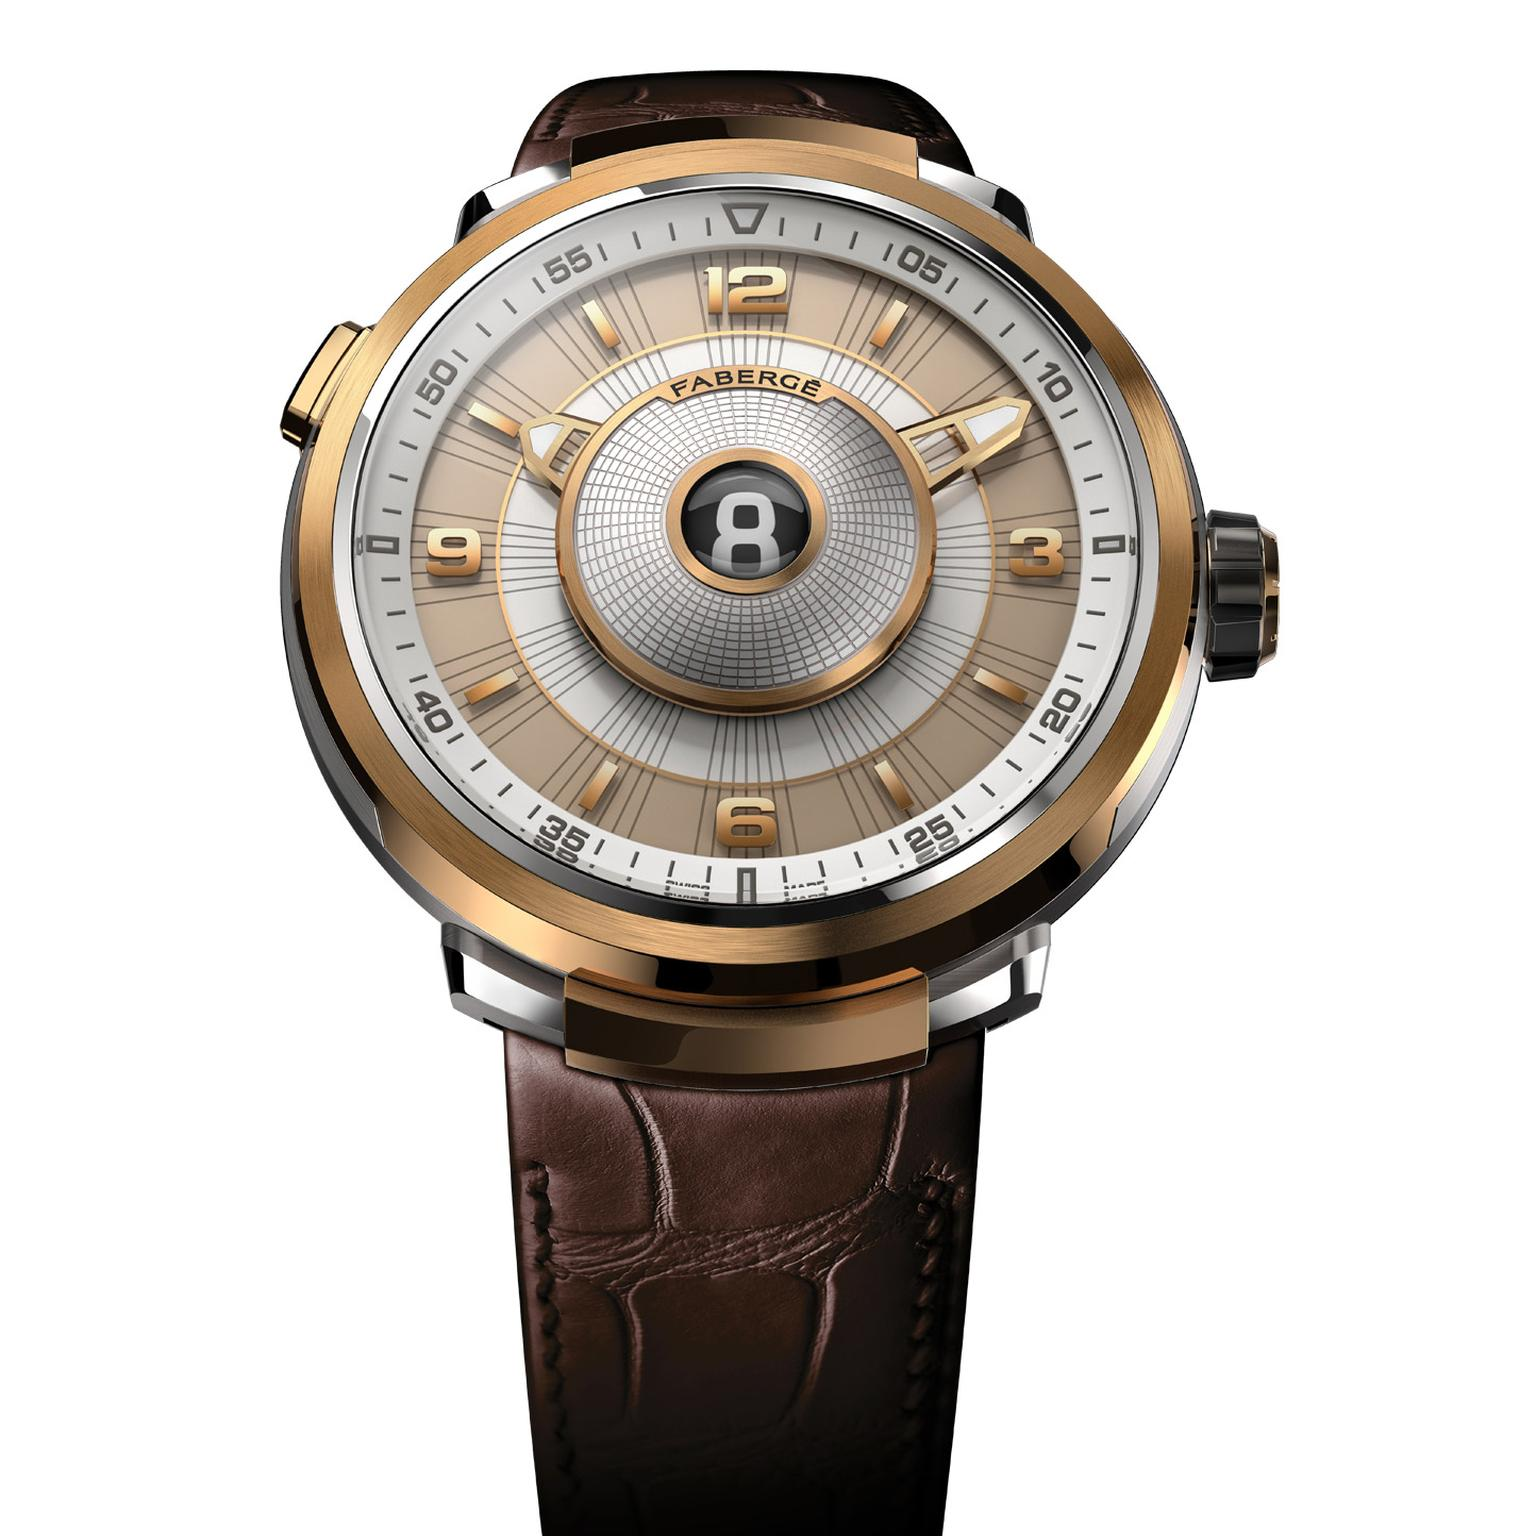 Fabergé Visionnaire DTZ watch in rose gold